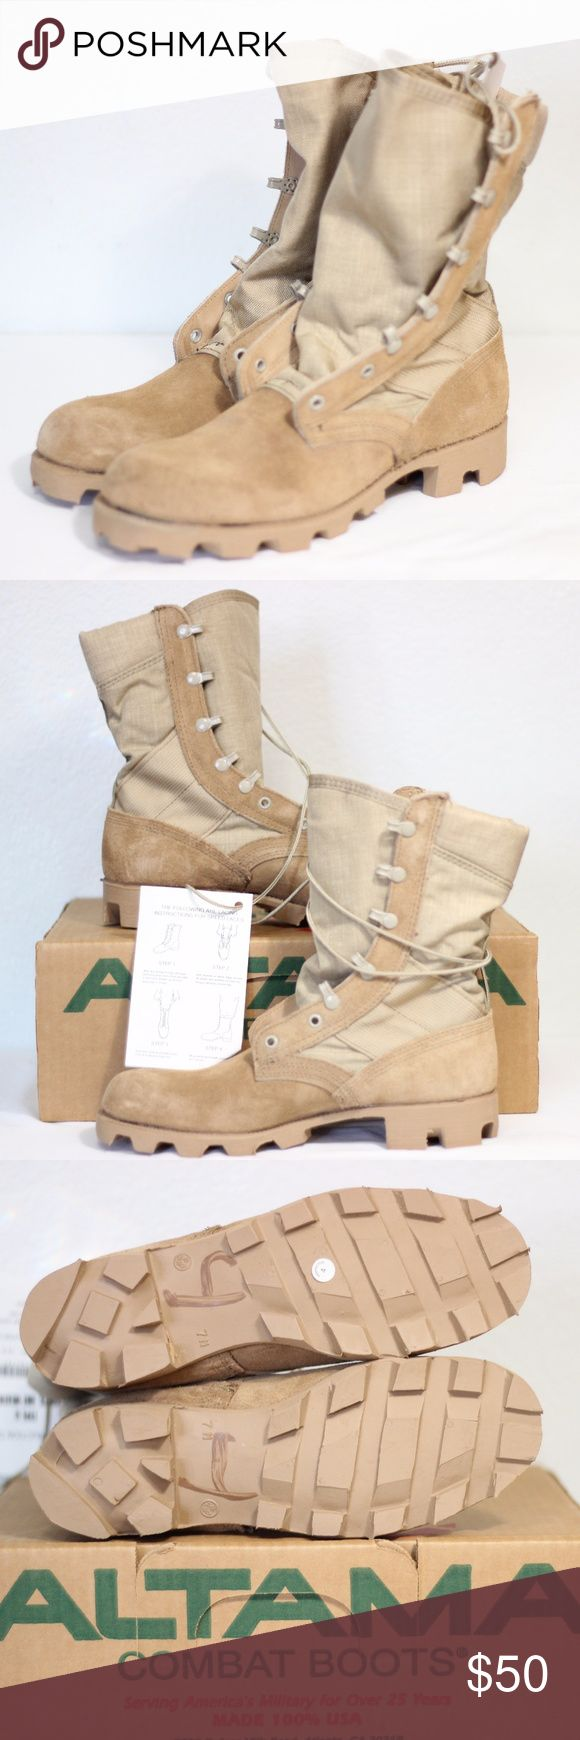 Altama Combat Desert Boot Mens Sand Tan Suede NWT Put these on!!!   FEATURES: Altama Desert Combat Boots Type II Boot, Hot Weather Sand Tan Desert Suede 100% Authentic New in Box Some boxes may be dented from storage, but all boots are in new condition   Questions welcome. Thanks for looking. Altama Shoes